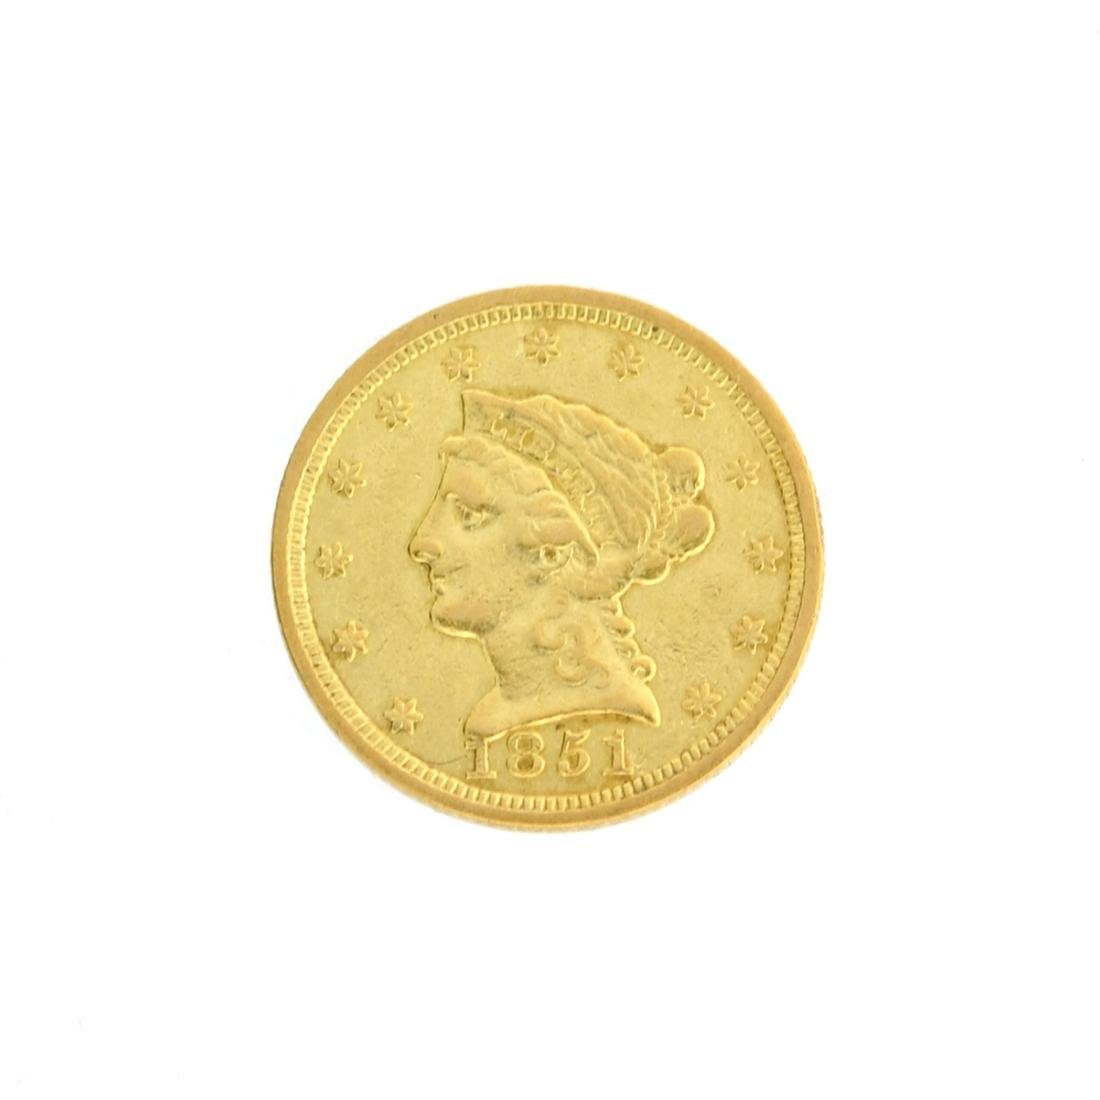 Extremely Rare 1851 $2.50 U.S. Liberty Head Gold Coin -